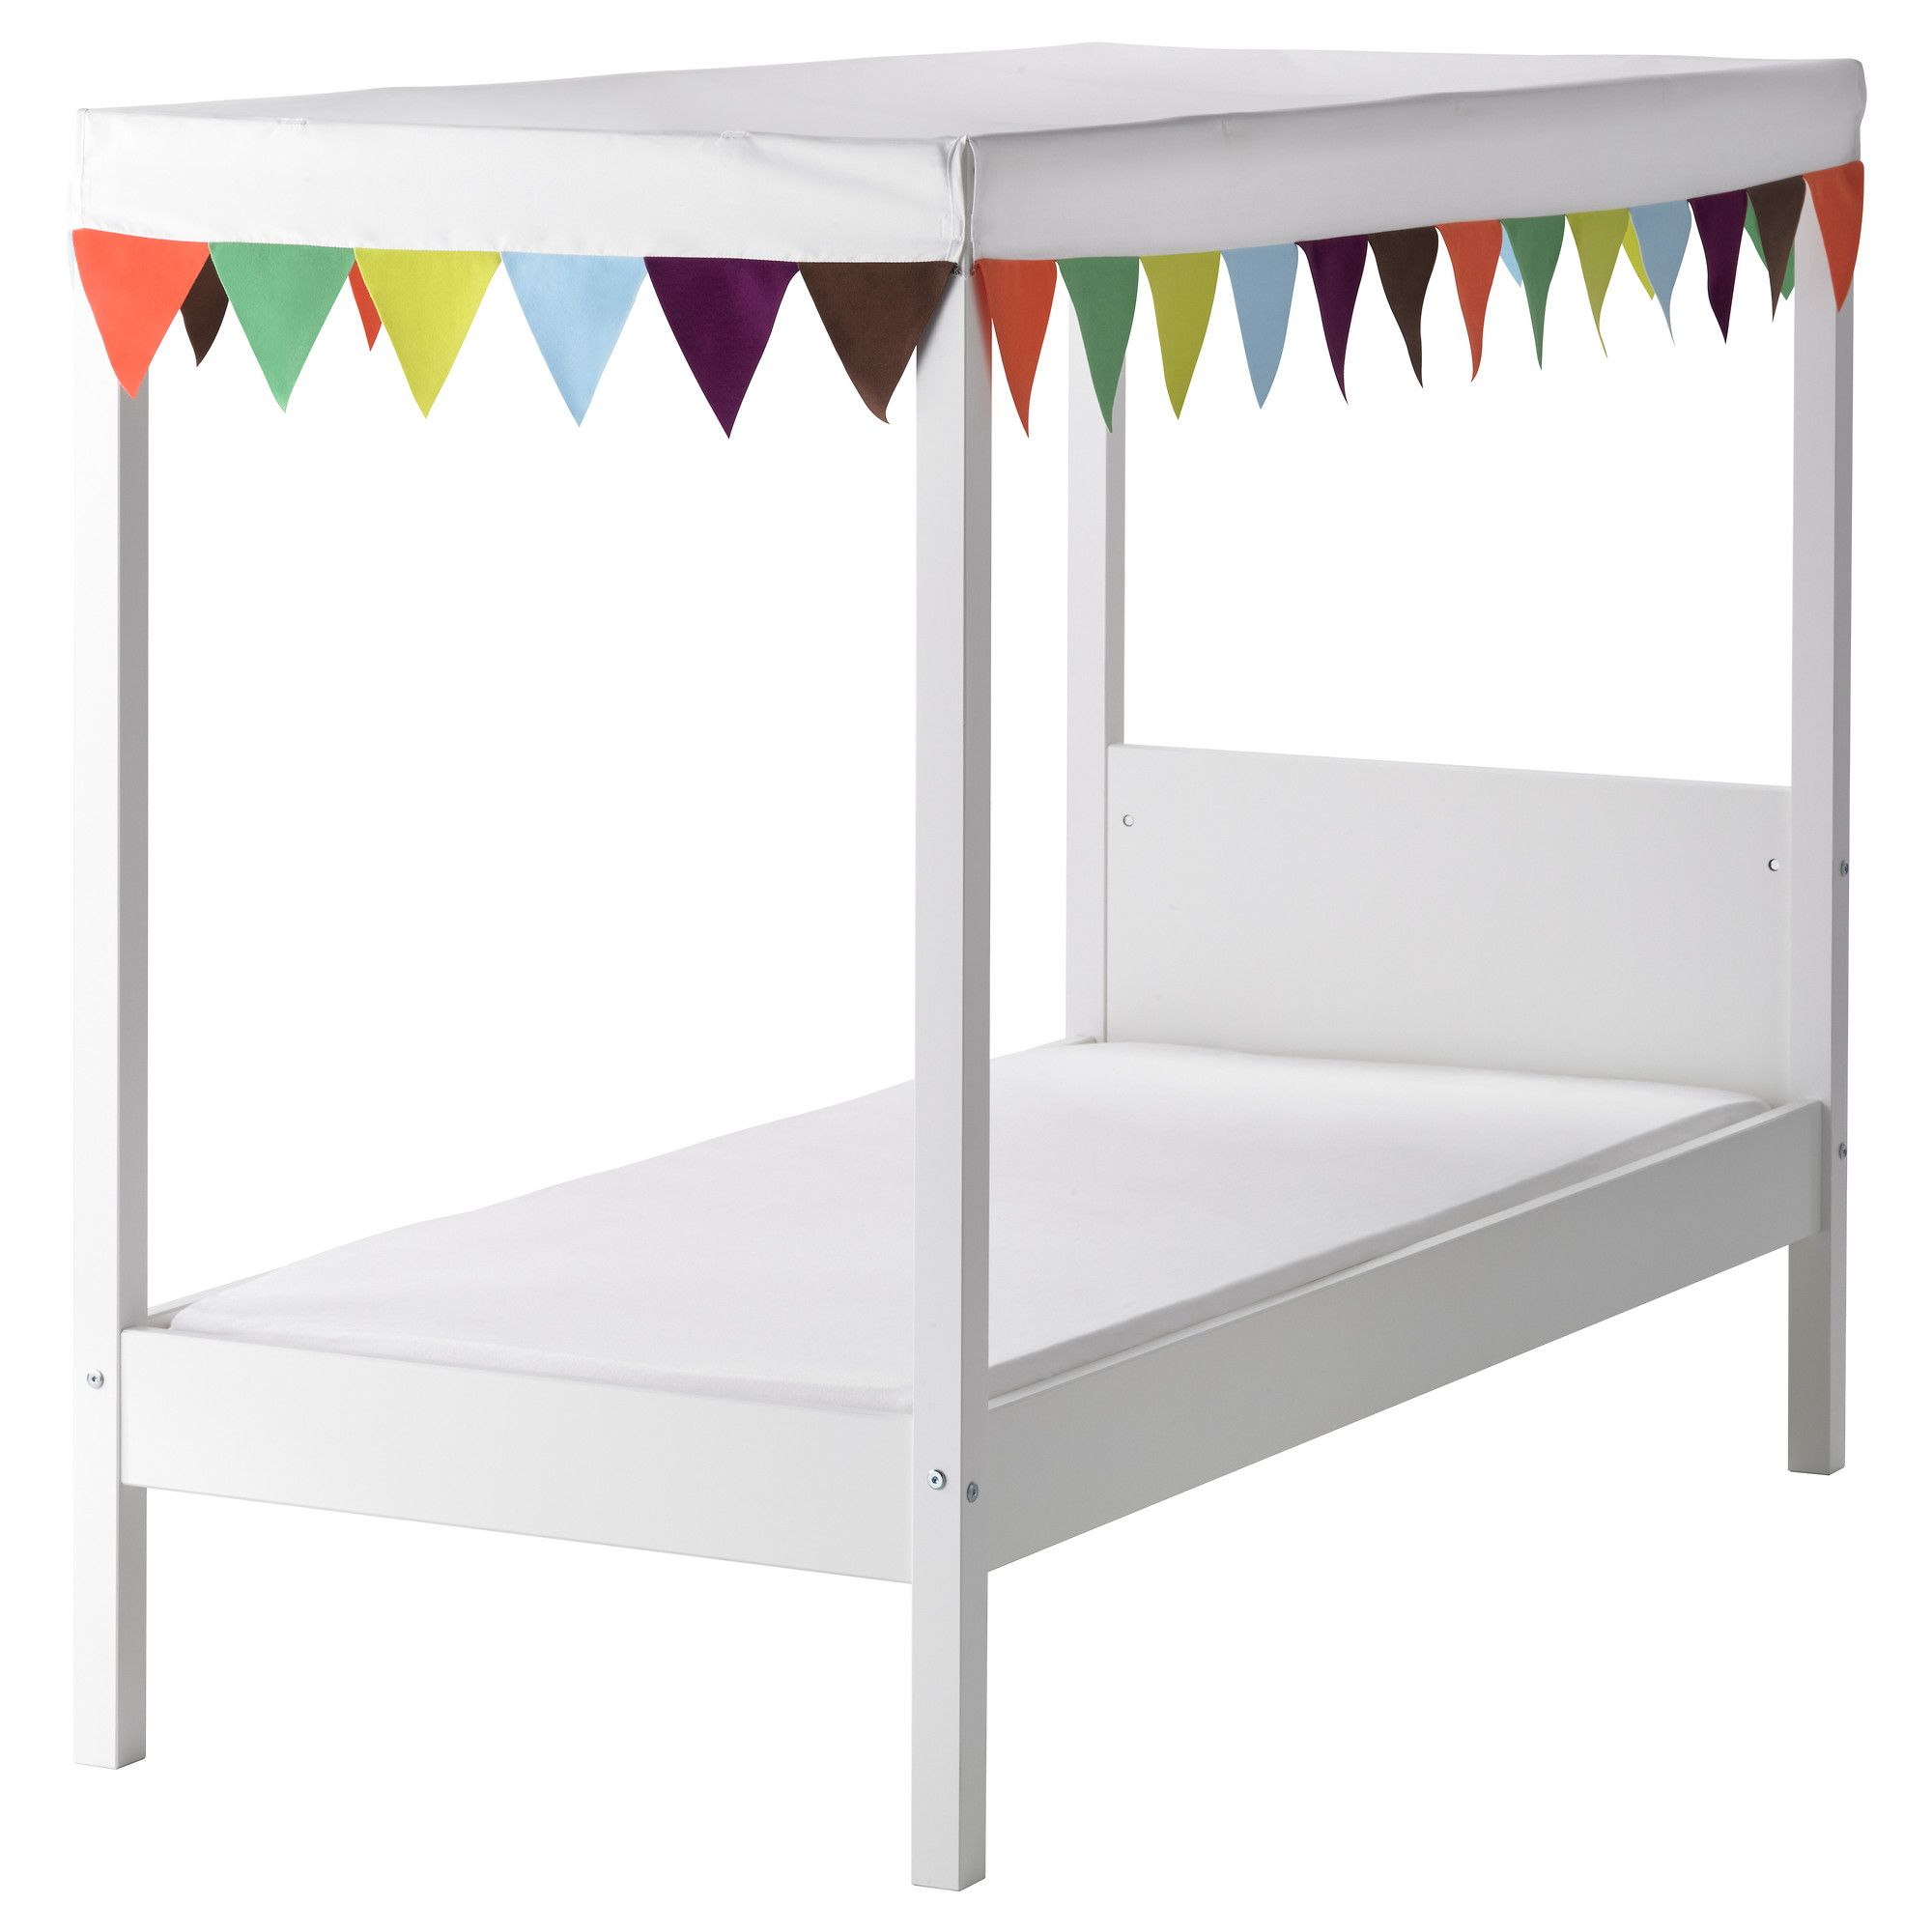 Övre bed with slatted base and canopy - ikeai almost want to buy